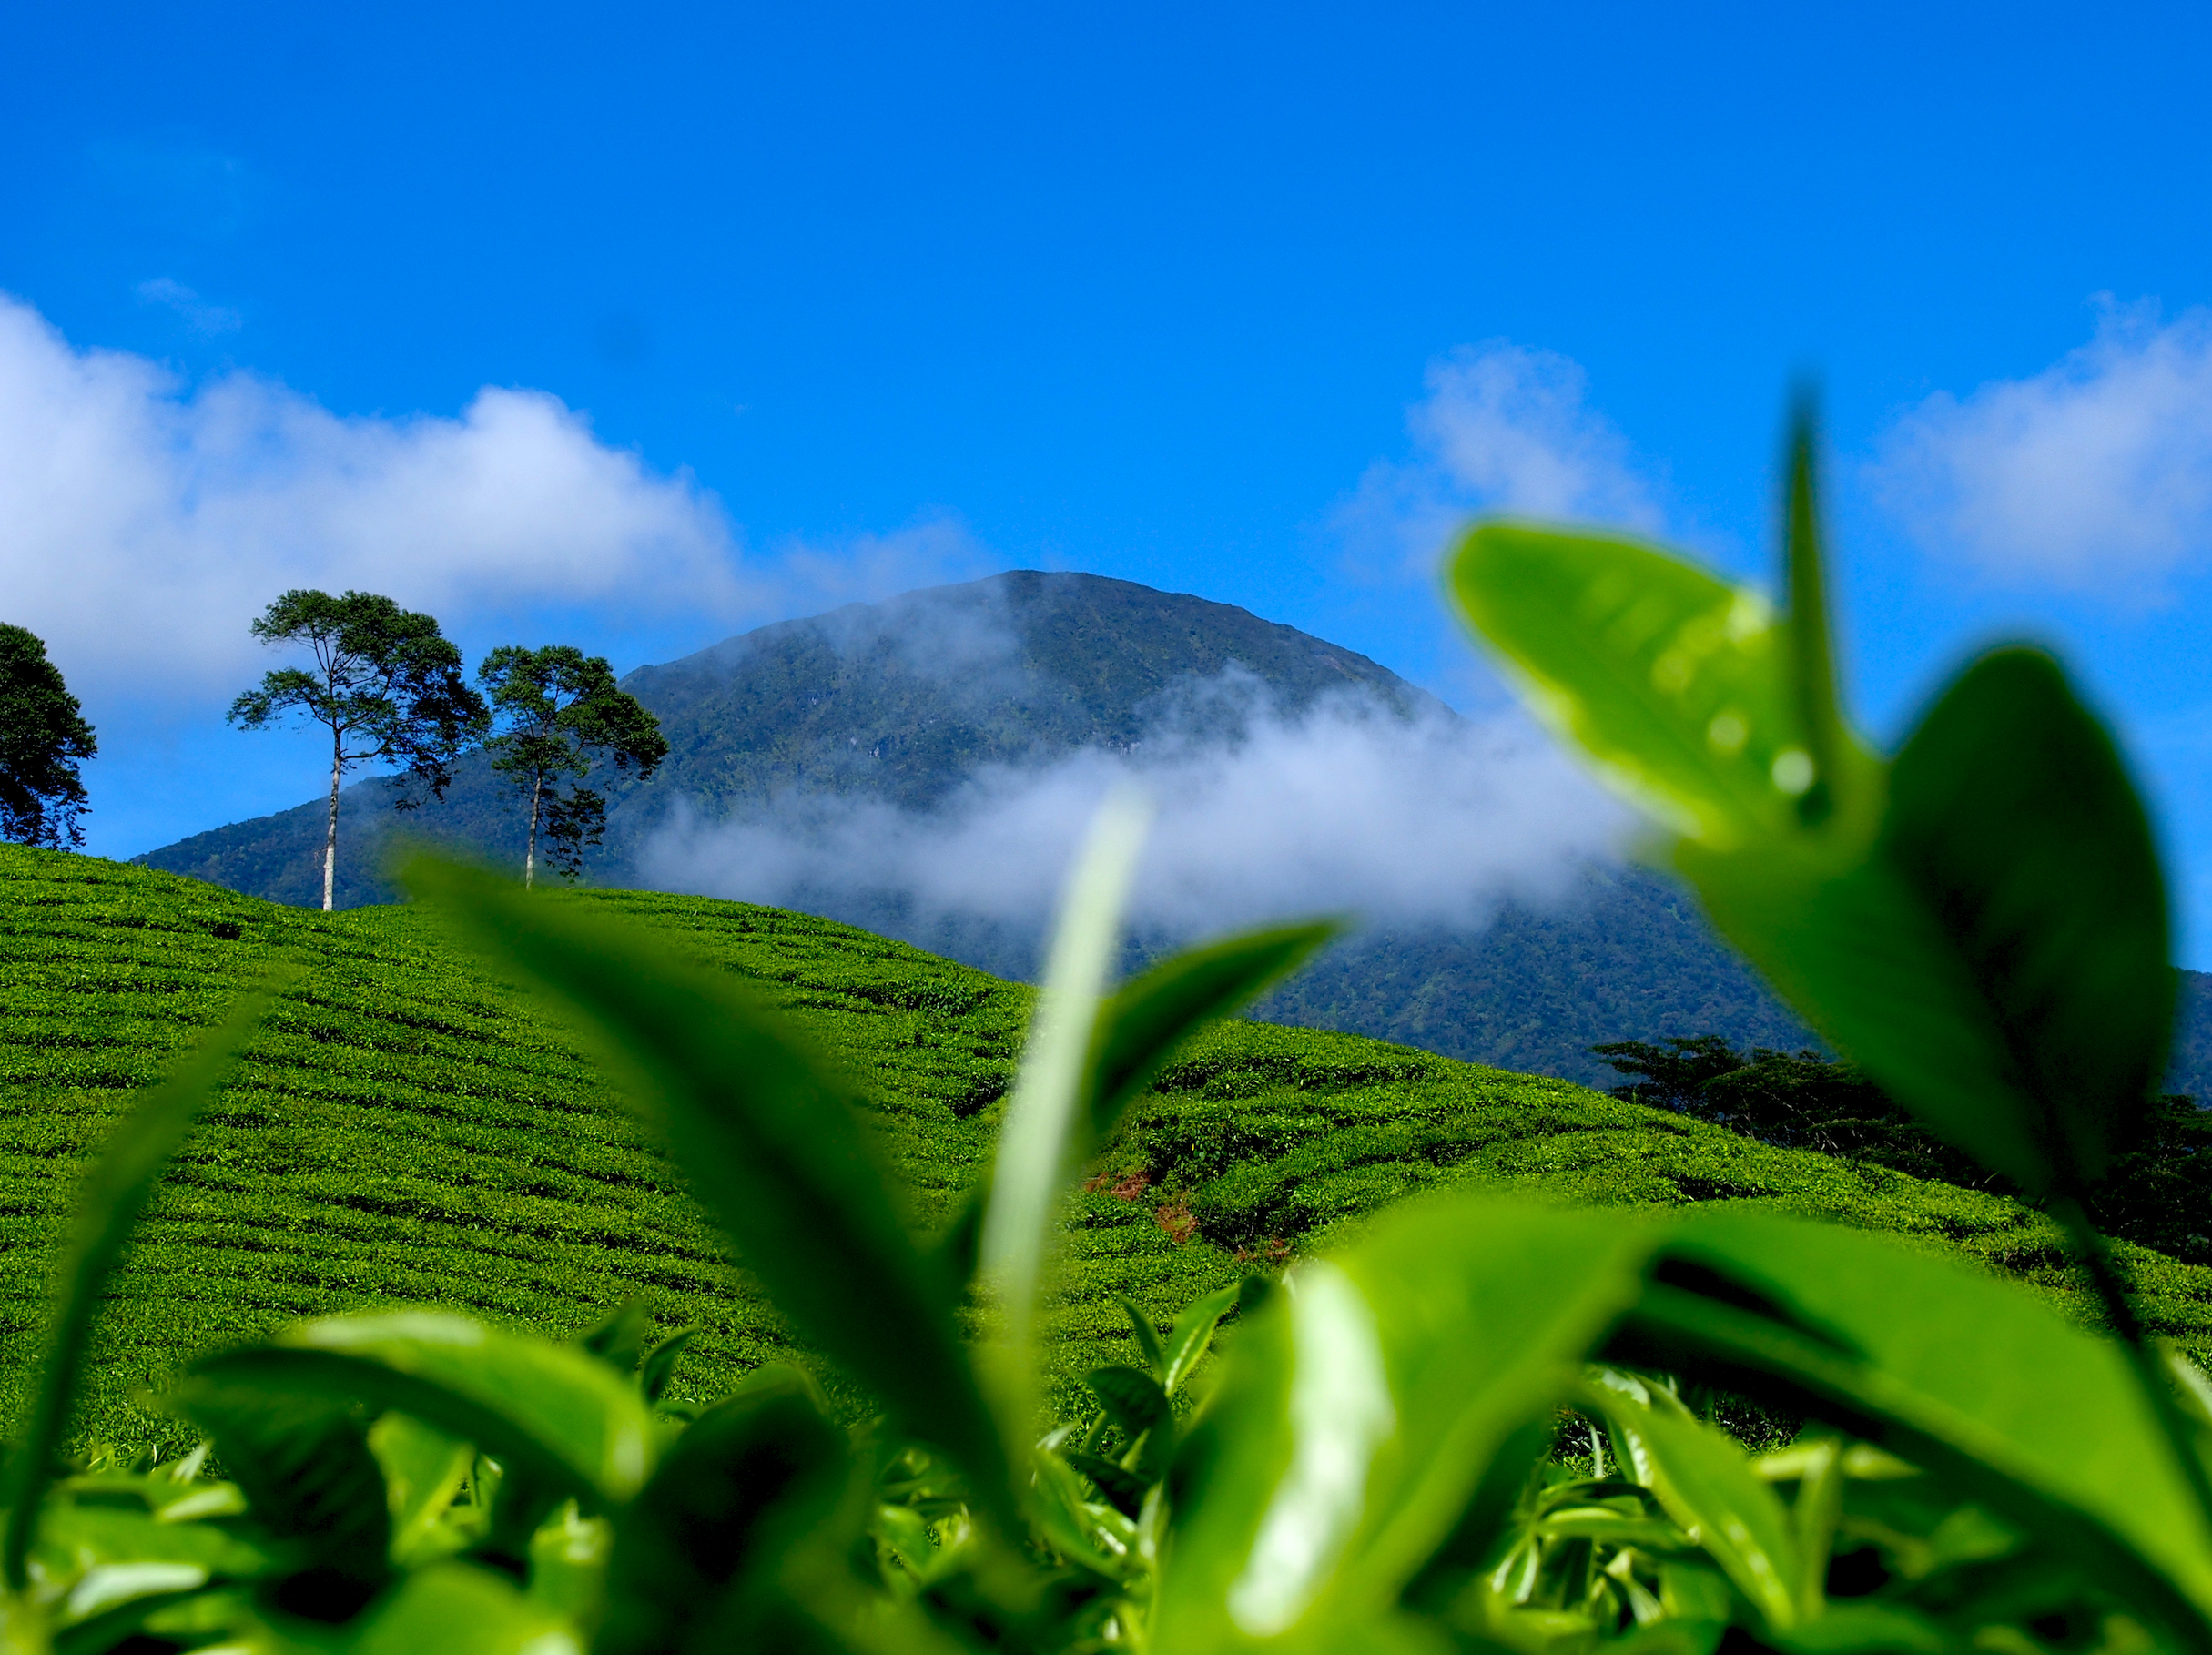 Copy of Tea fields north of the equator